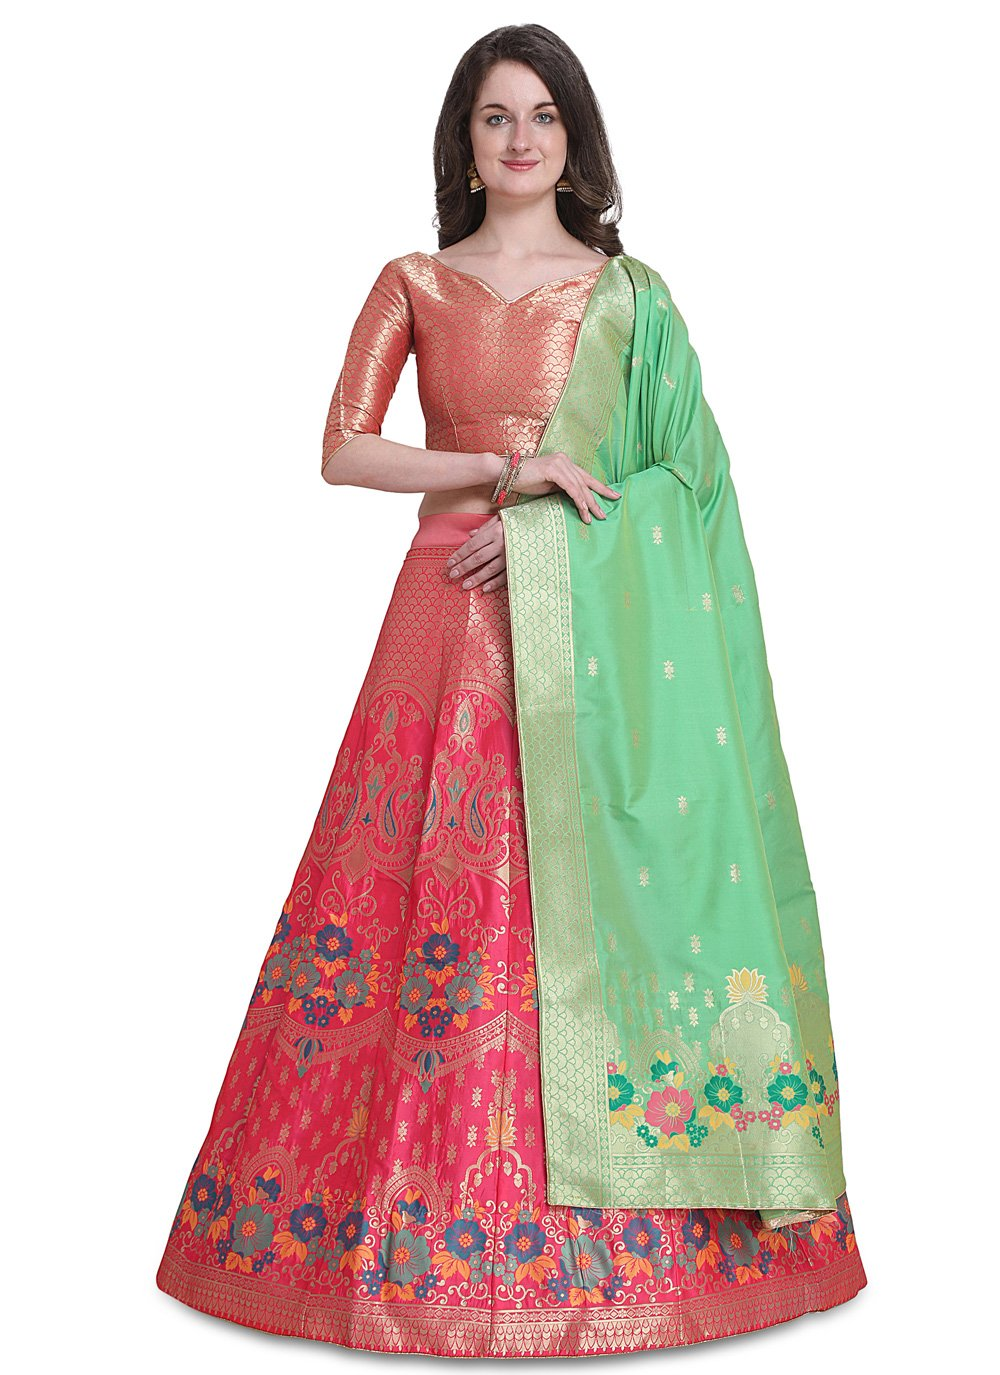 Pink Jacquard Reception Lehenga Choli